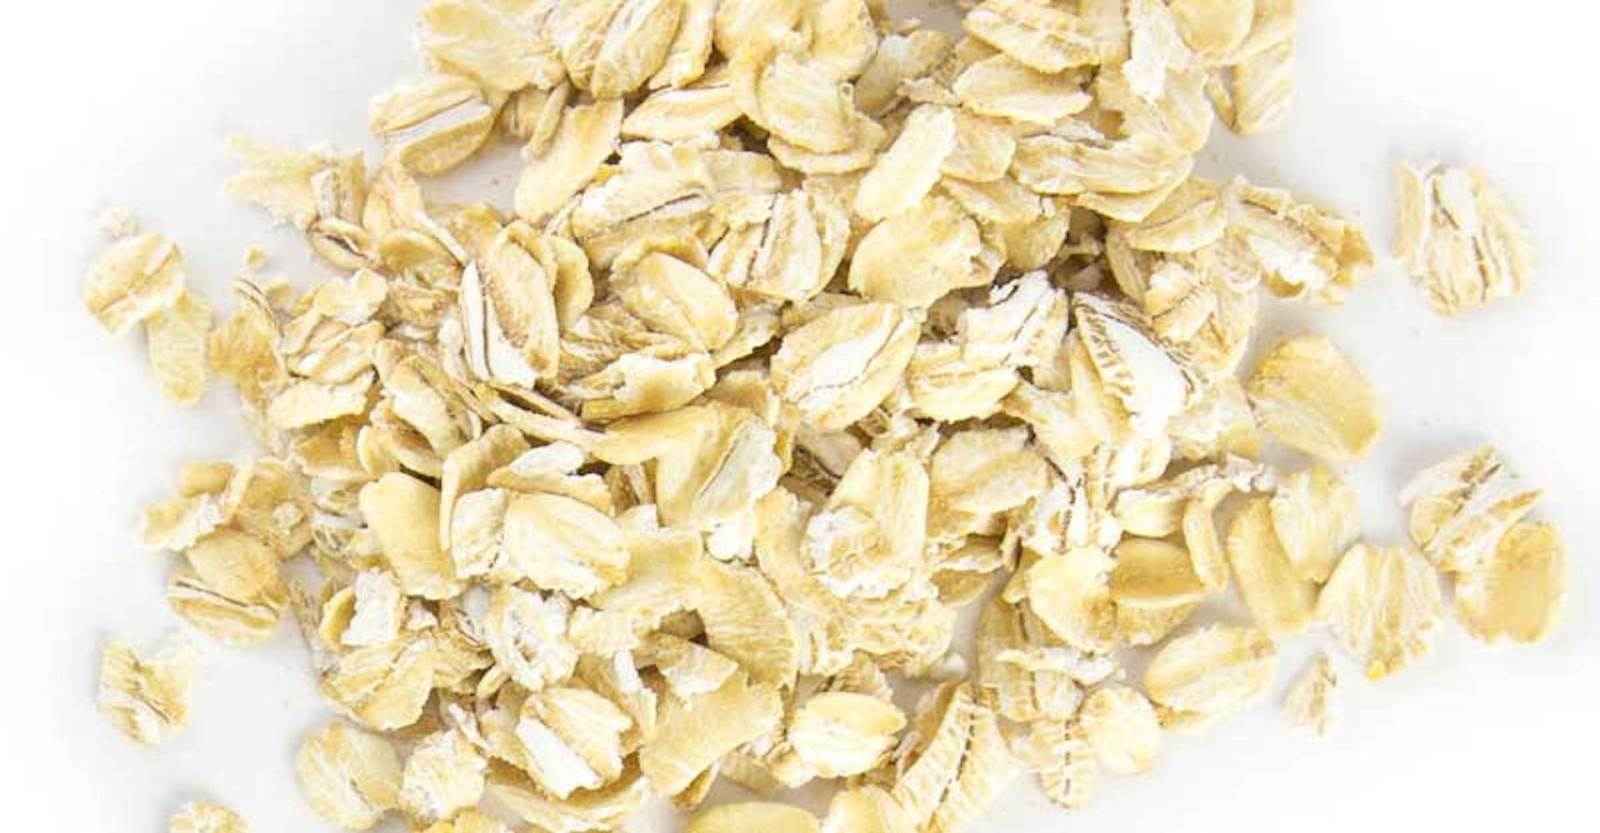 Oats: Not Just for Breakfast and Horses | Craft Beer & Brewing